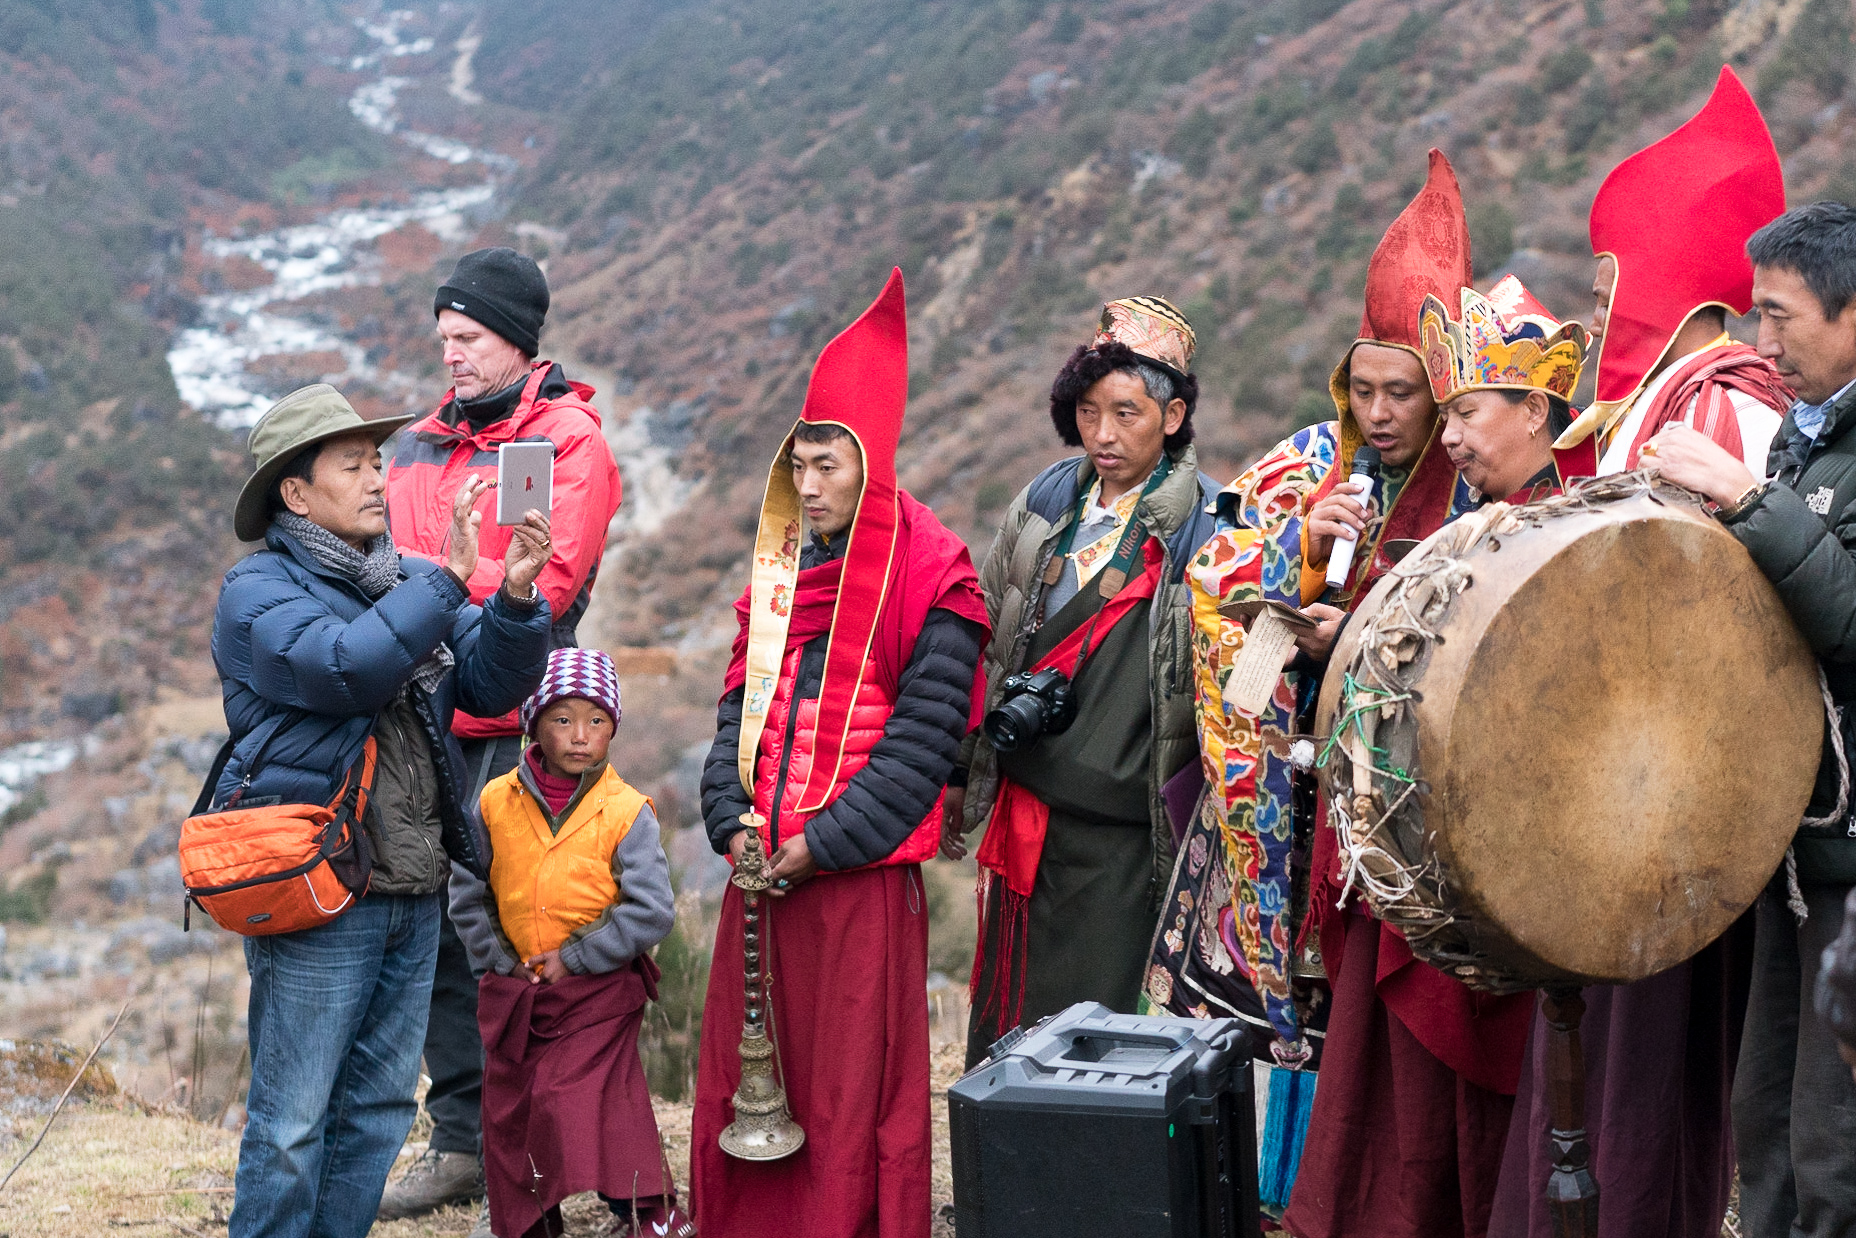 Phutuk festival in Walung, Nepal. Photo: Martin Saxer, 2016